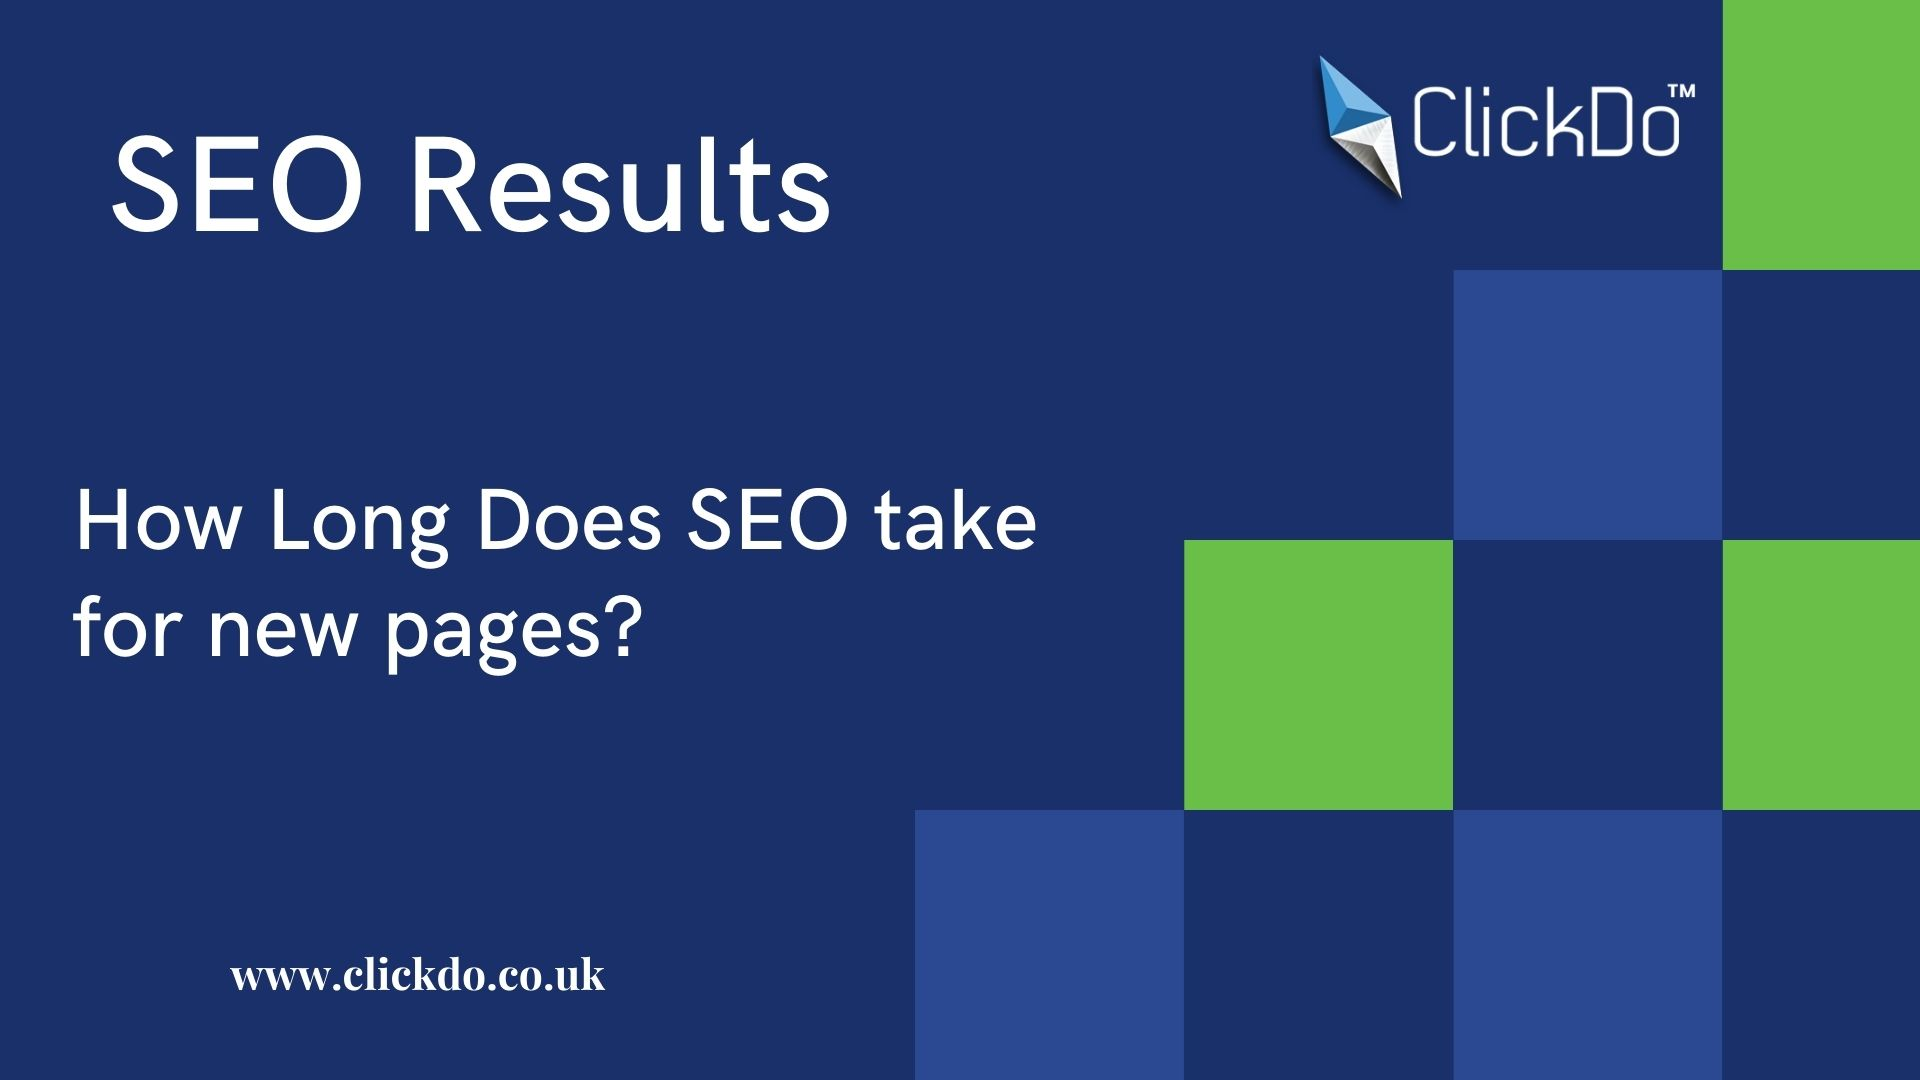 How Long Does SEO take for new pages